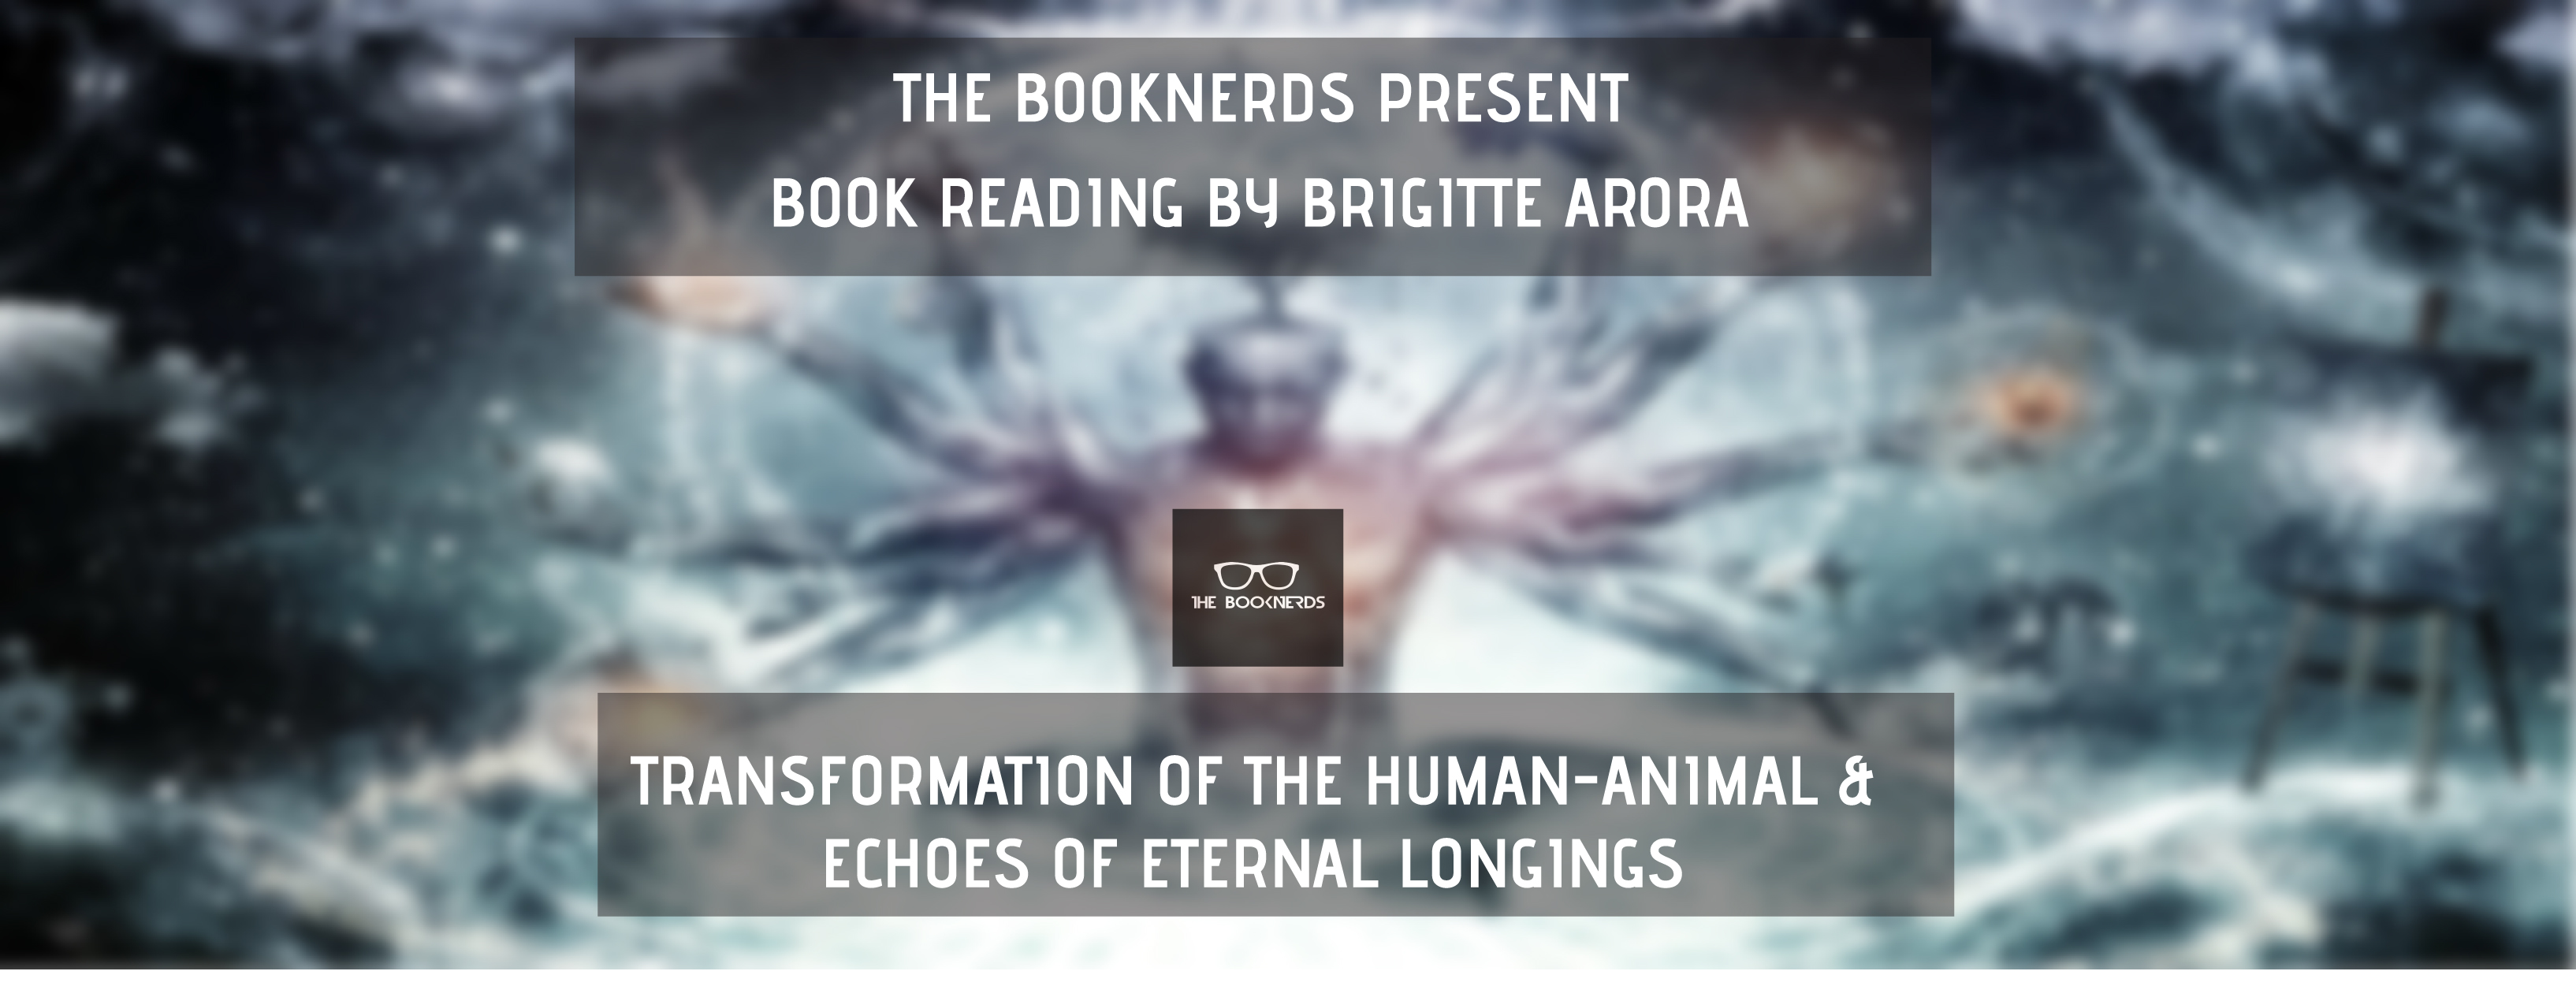 Book Reading by Brigitte Arora